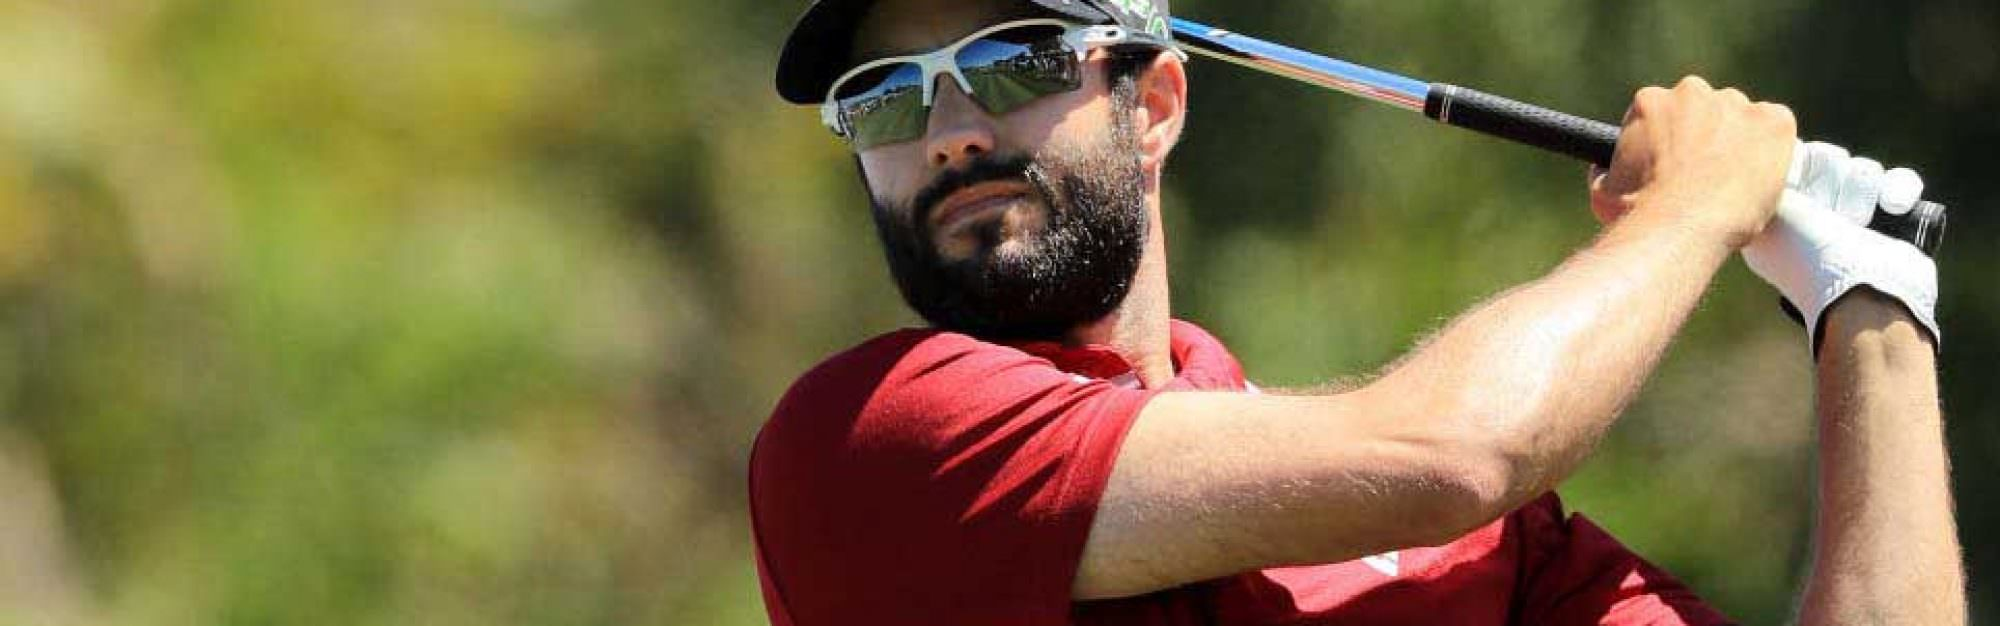 'Screw you, but thanks' – Hadwin's rules confession caught on microphone